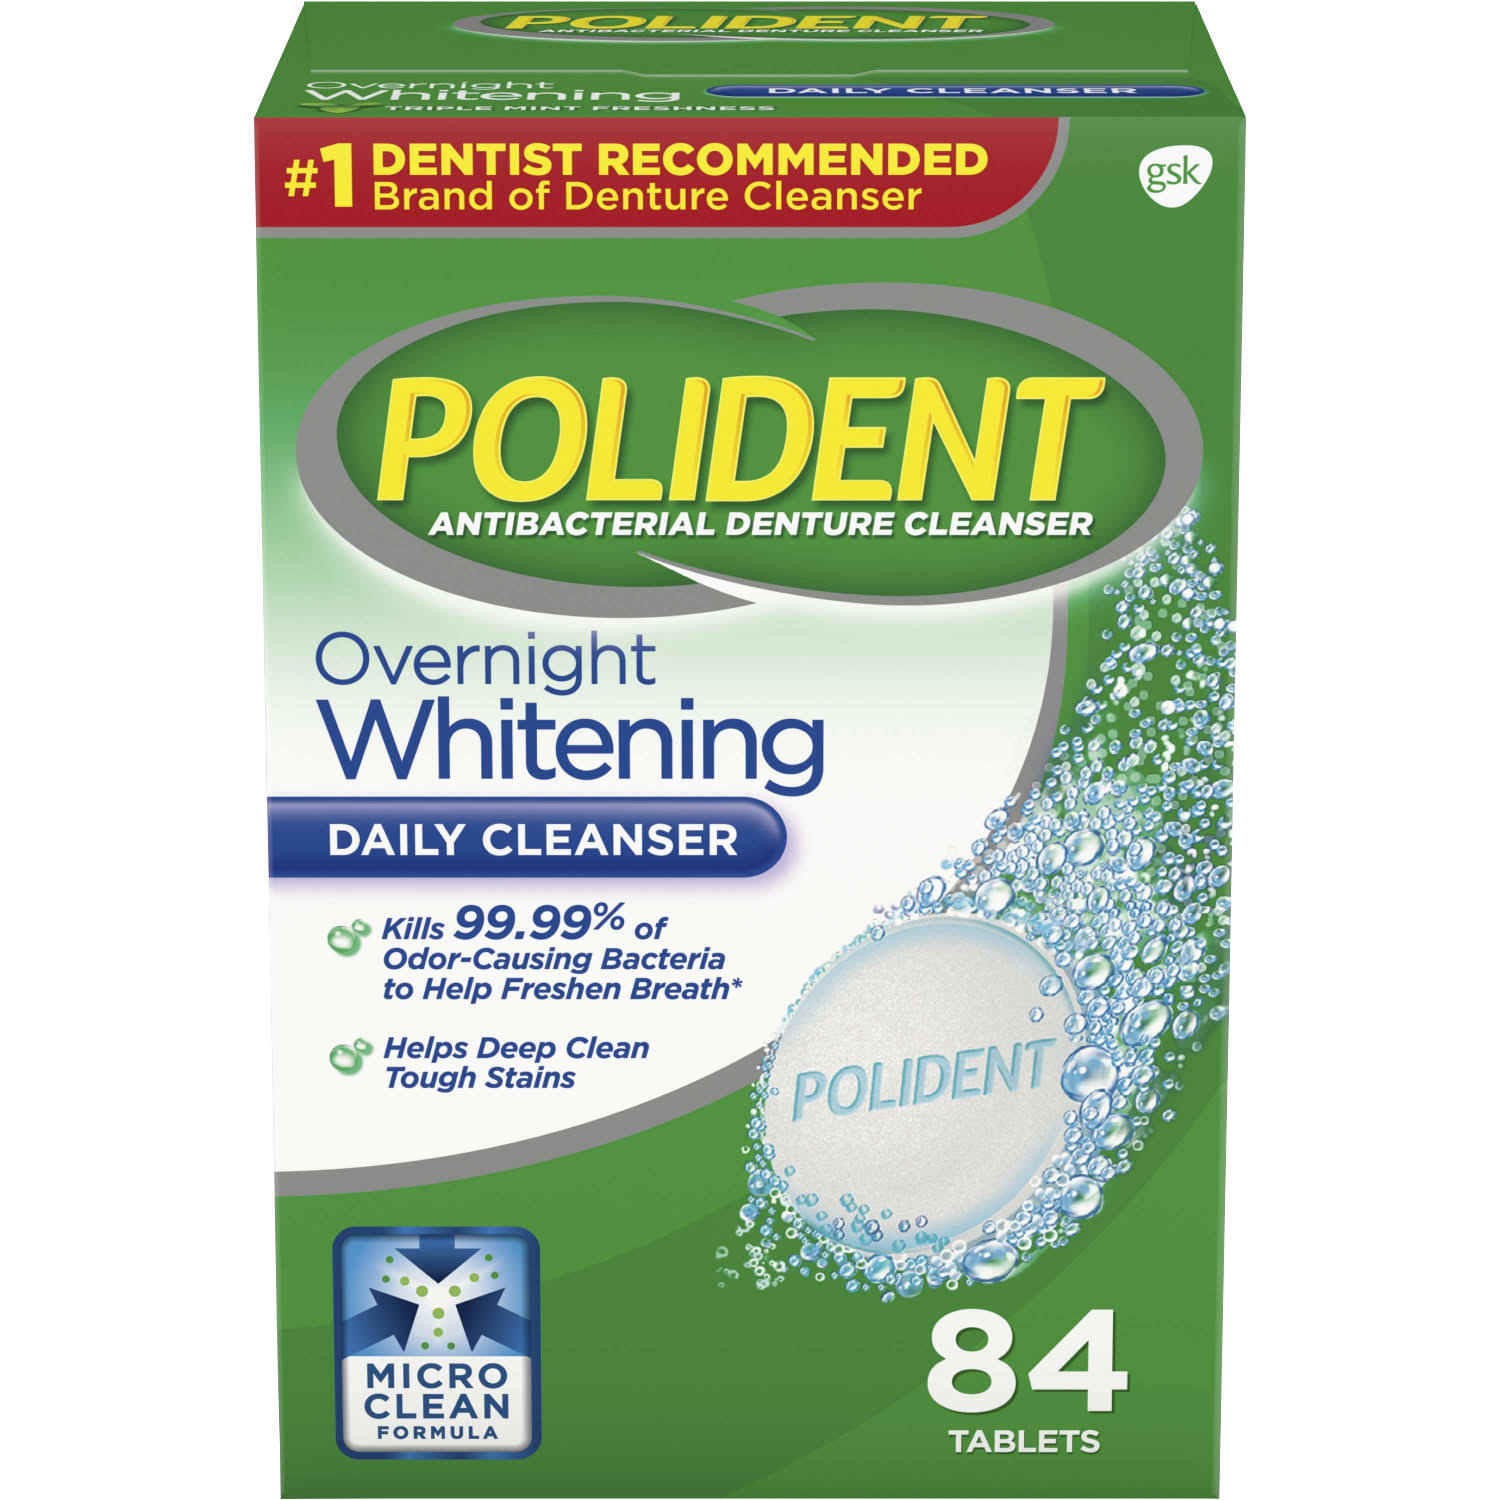 Gsk Polident Overnight Whitening Tablets - 84pk